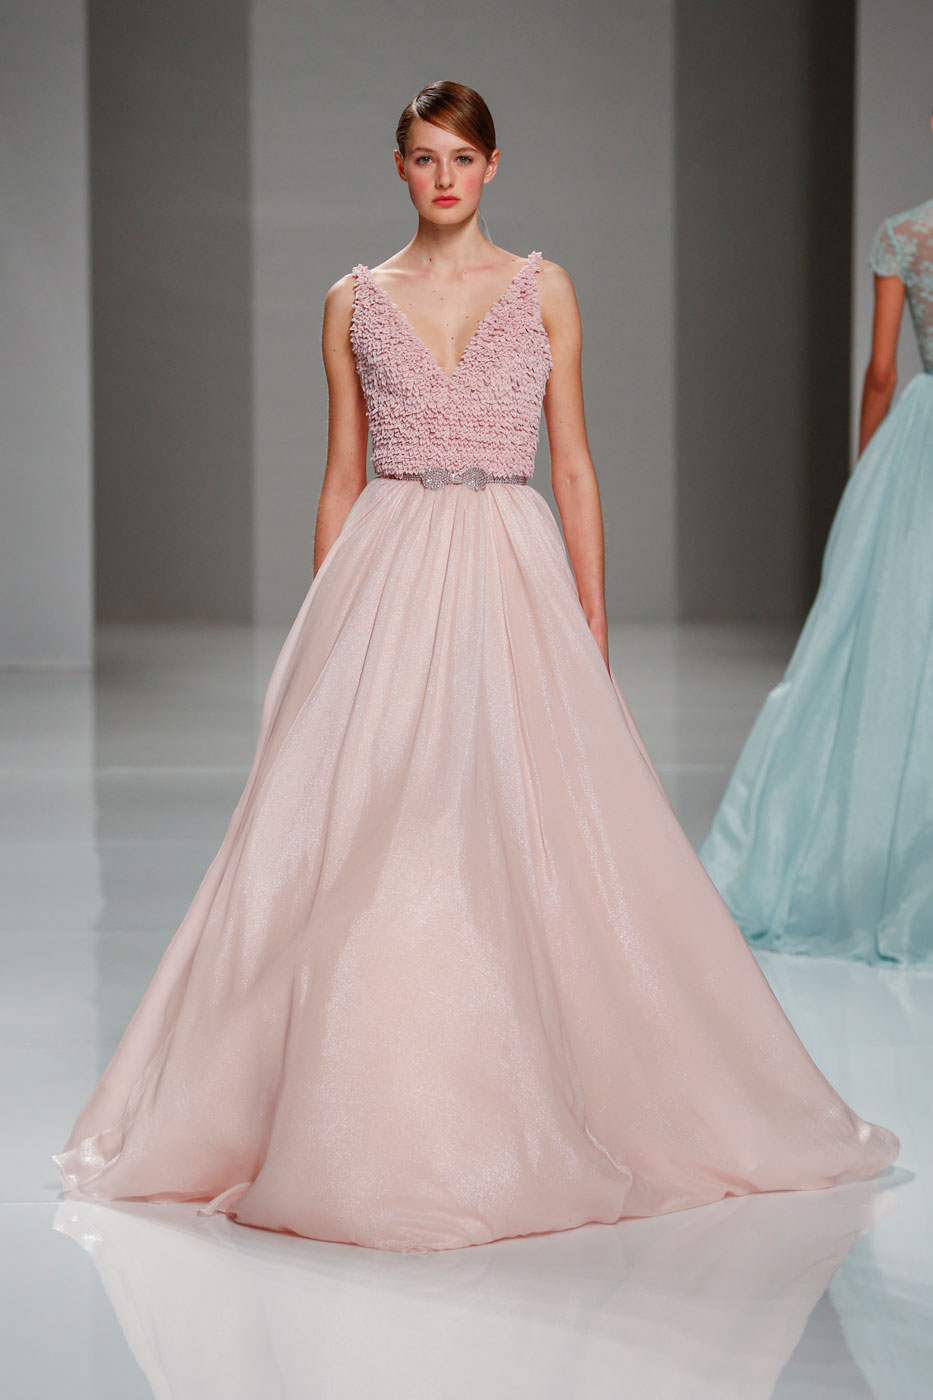 Georges-Hobeika-fashion-runway-show-haute-couture-paris-spring-2015-the-impression-43